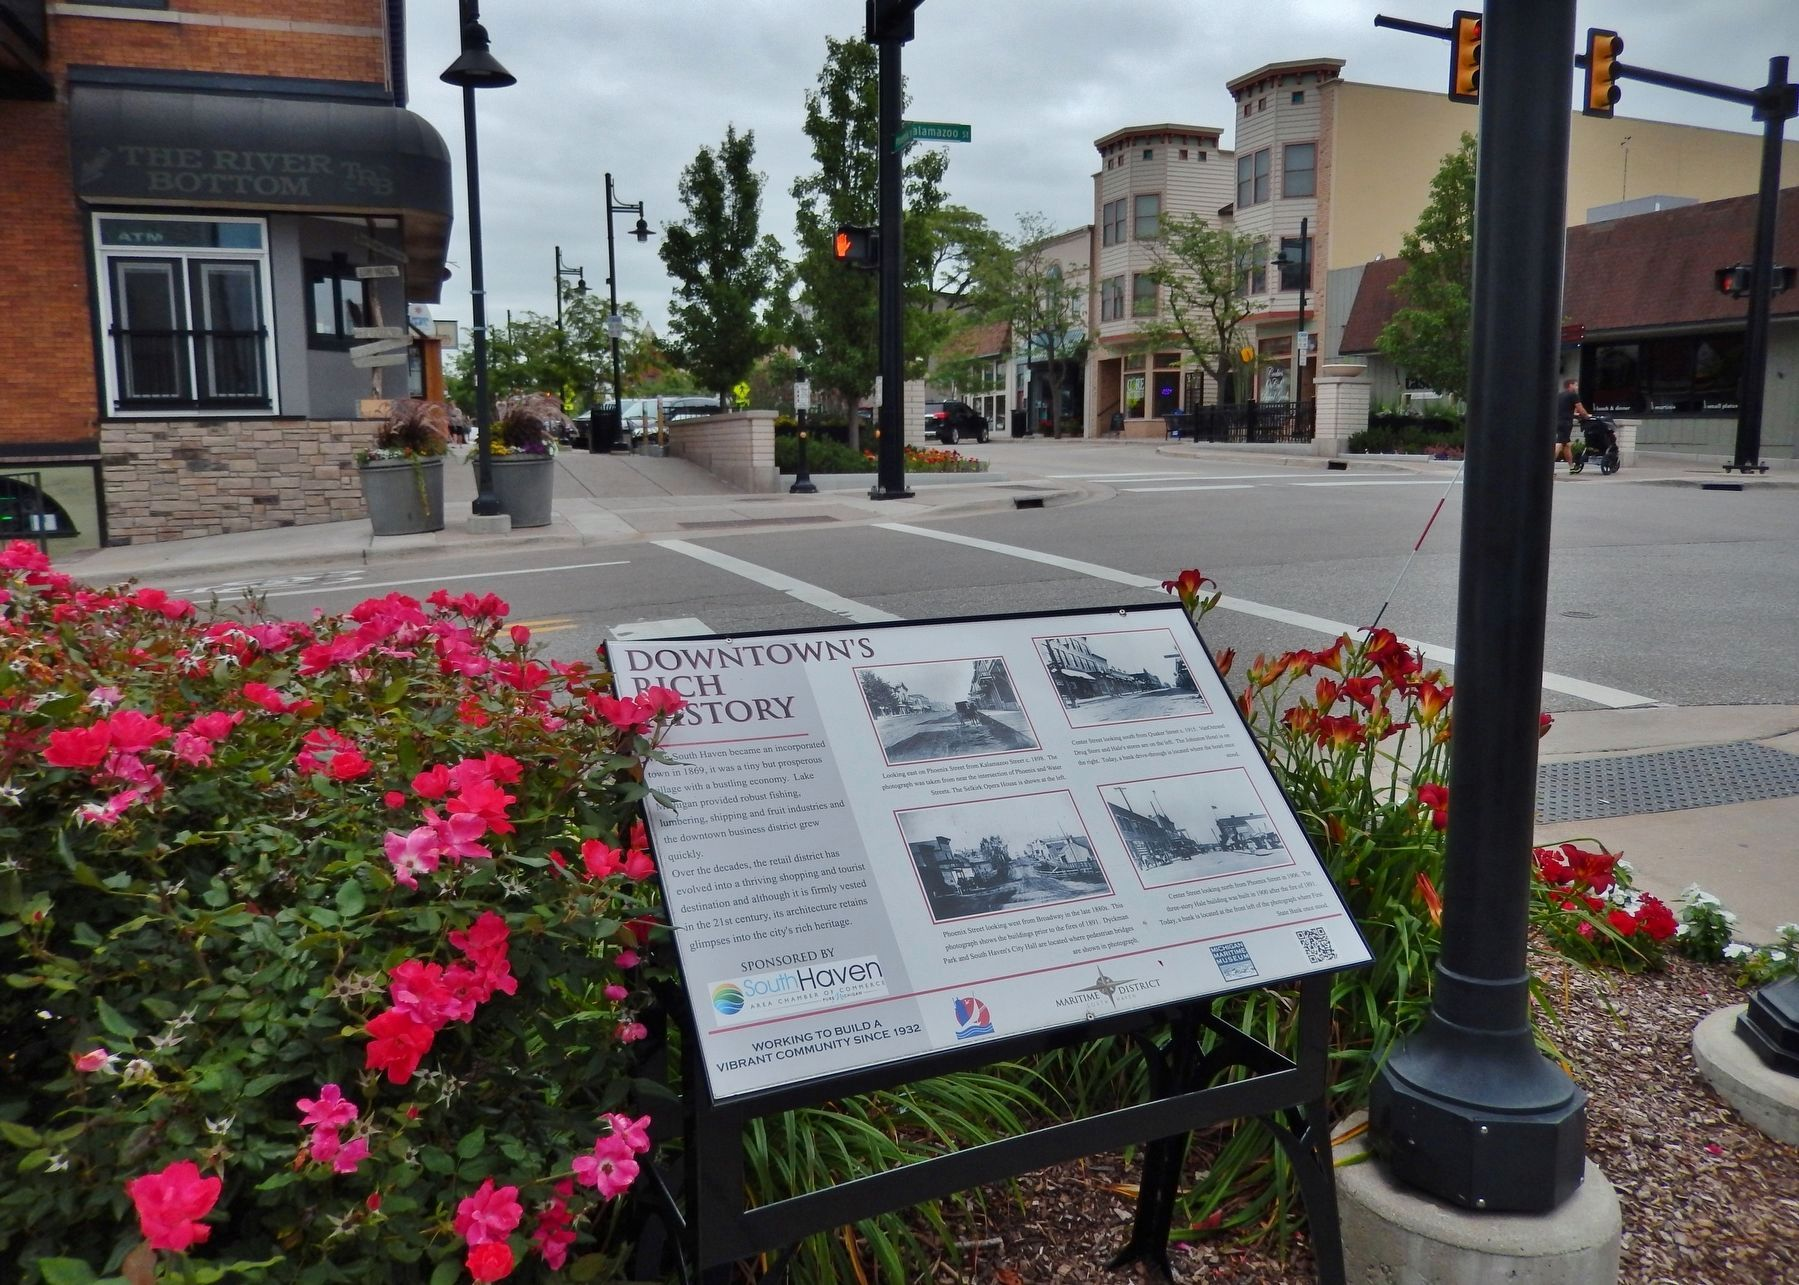 Downtown's Rich History Marker (<i>wide view; looking east on Phoenix Street from Kalamazoo</i>) image. Click for full size.